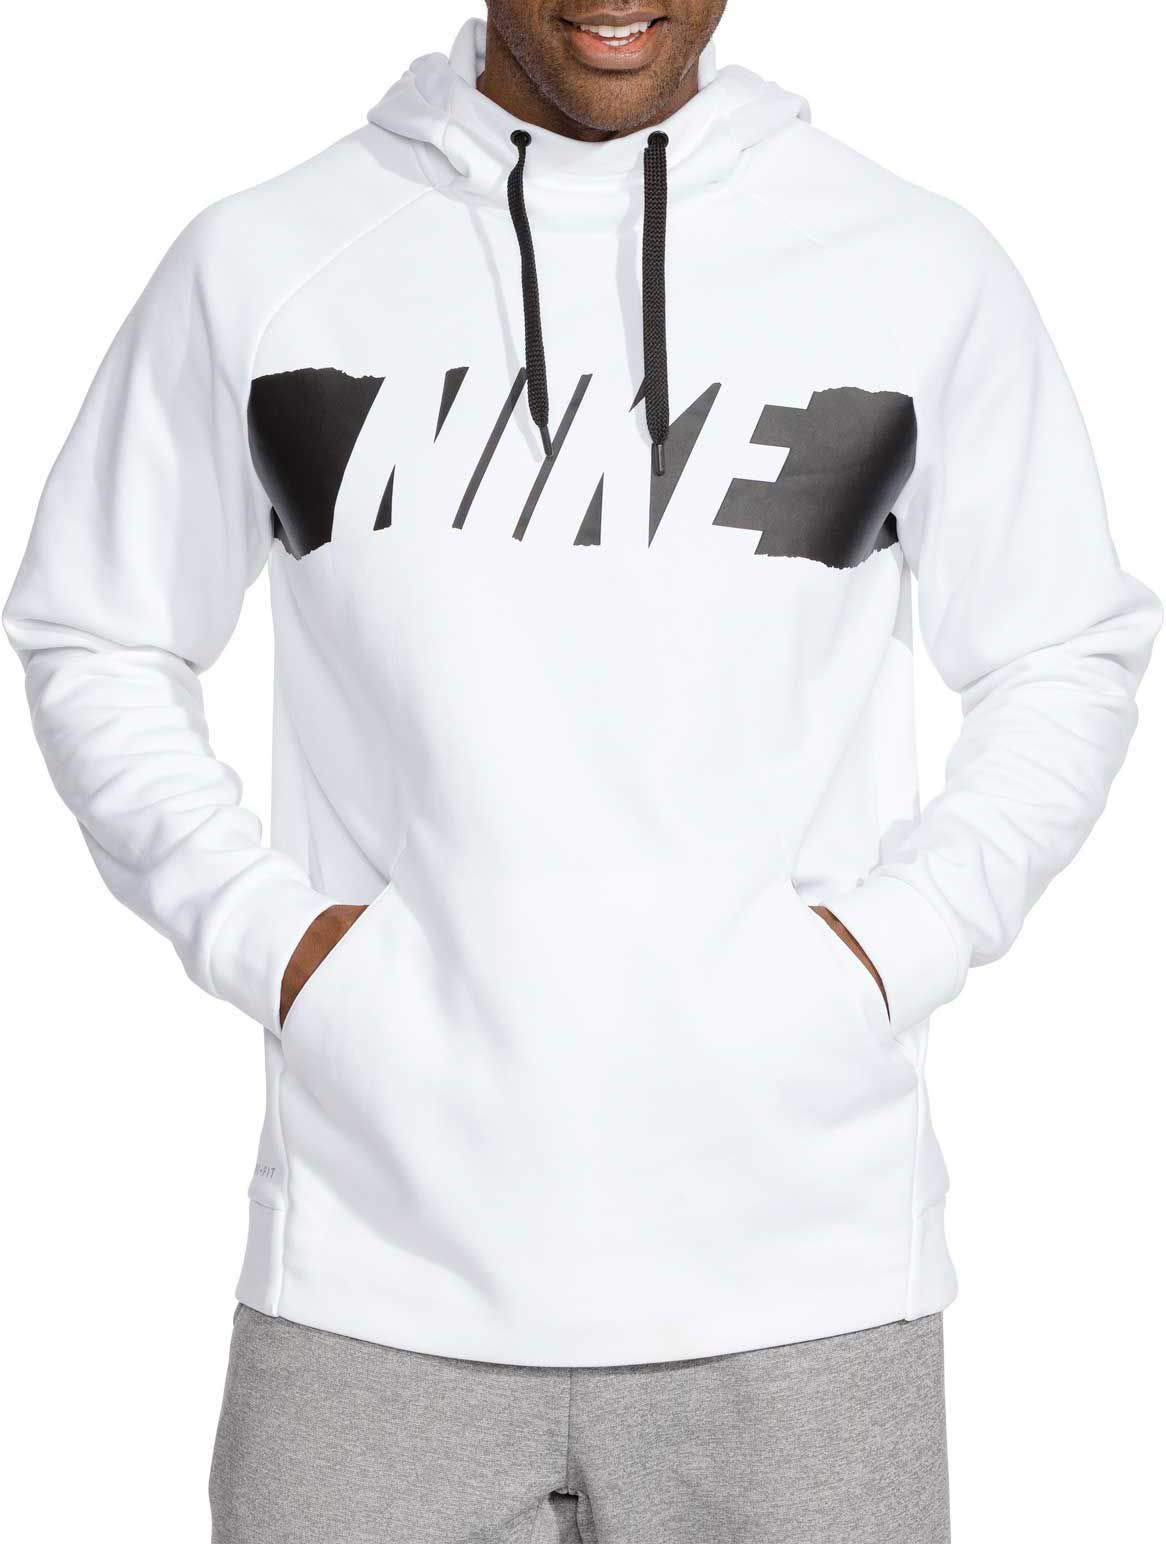 NIKE Men's Therma Graphic Training Hoodie (White/Black, Medium)